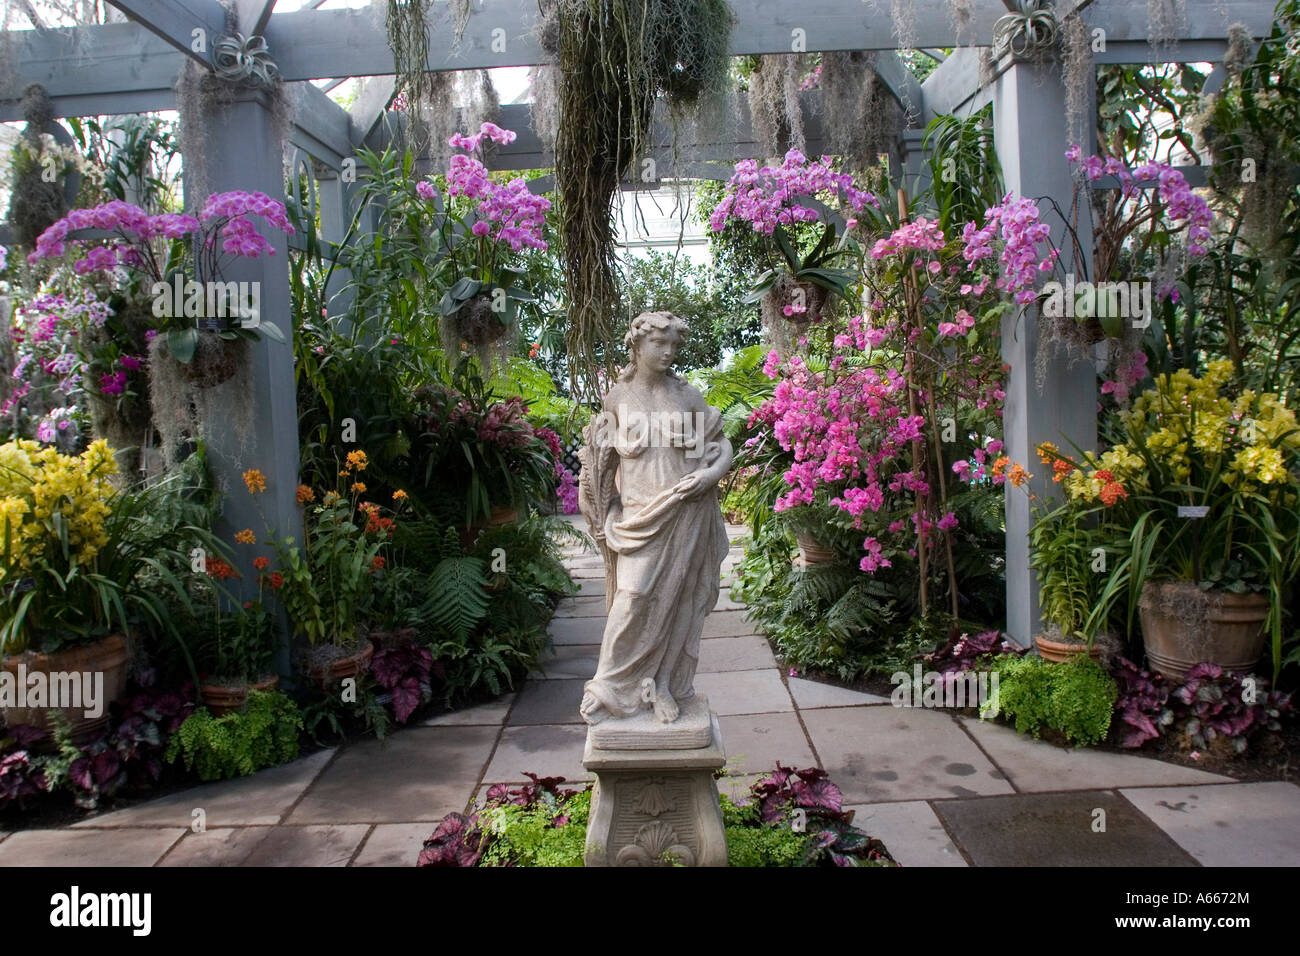 Orchid Show In Enid A Haupt Conservatory At New York Botanical